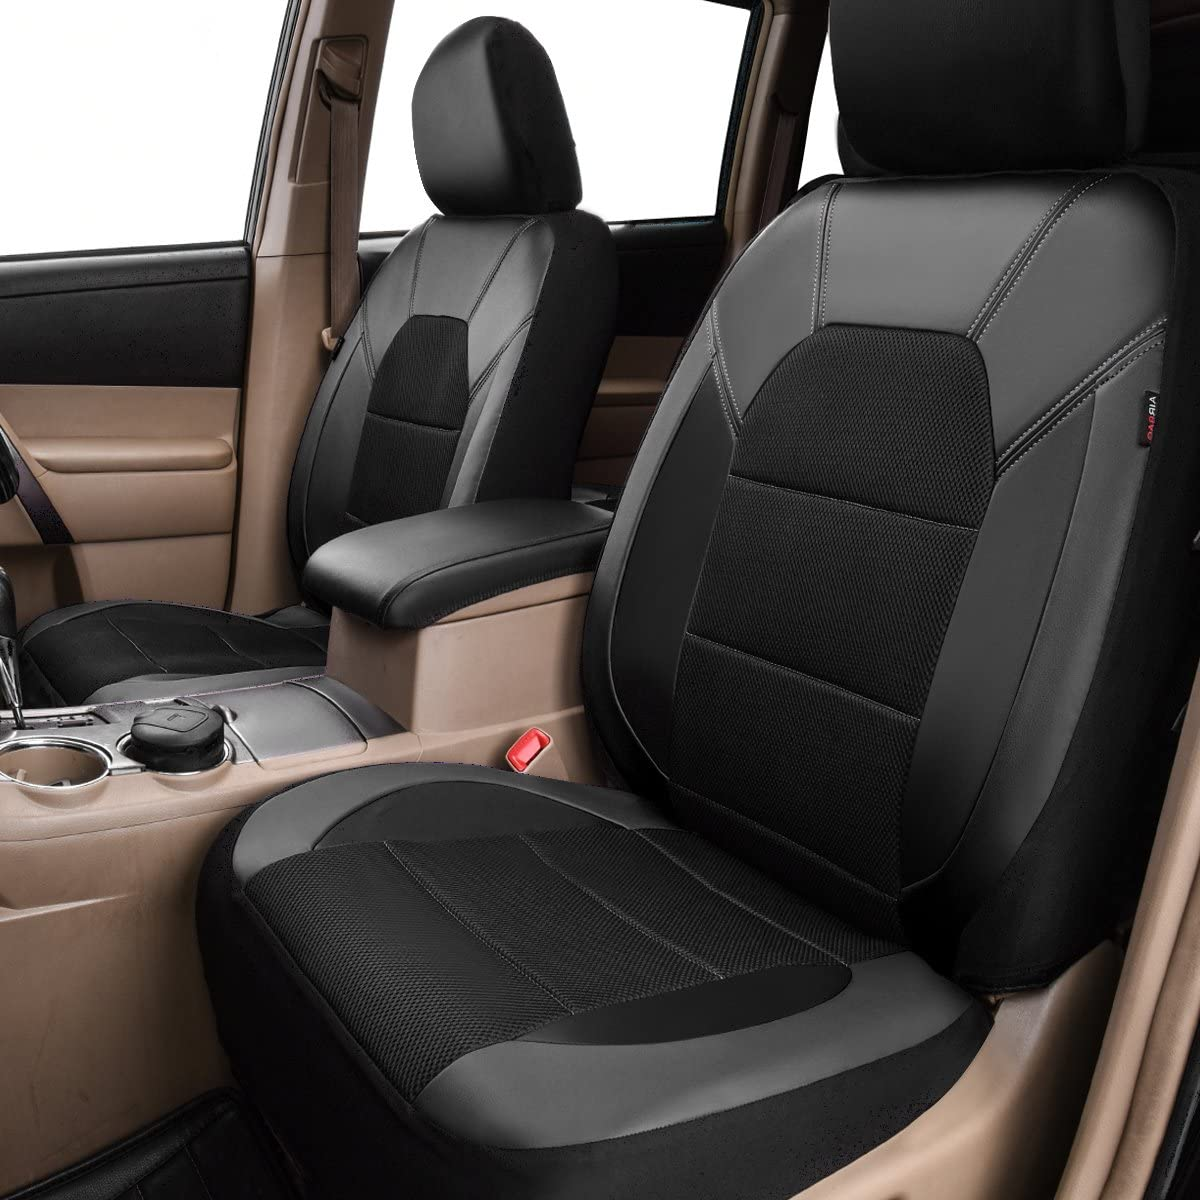 Trunkcs,Suvs,Airbag Compatible,Inside Zipper Design and Opening Holes for Headrest 11PC, Black and Blue for Sedans CAR PASS Leather and Mesh Universal Fit Car Seat Covers